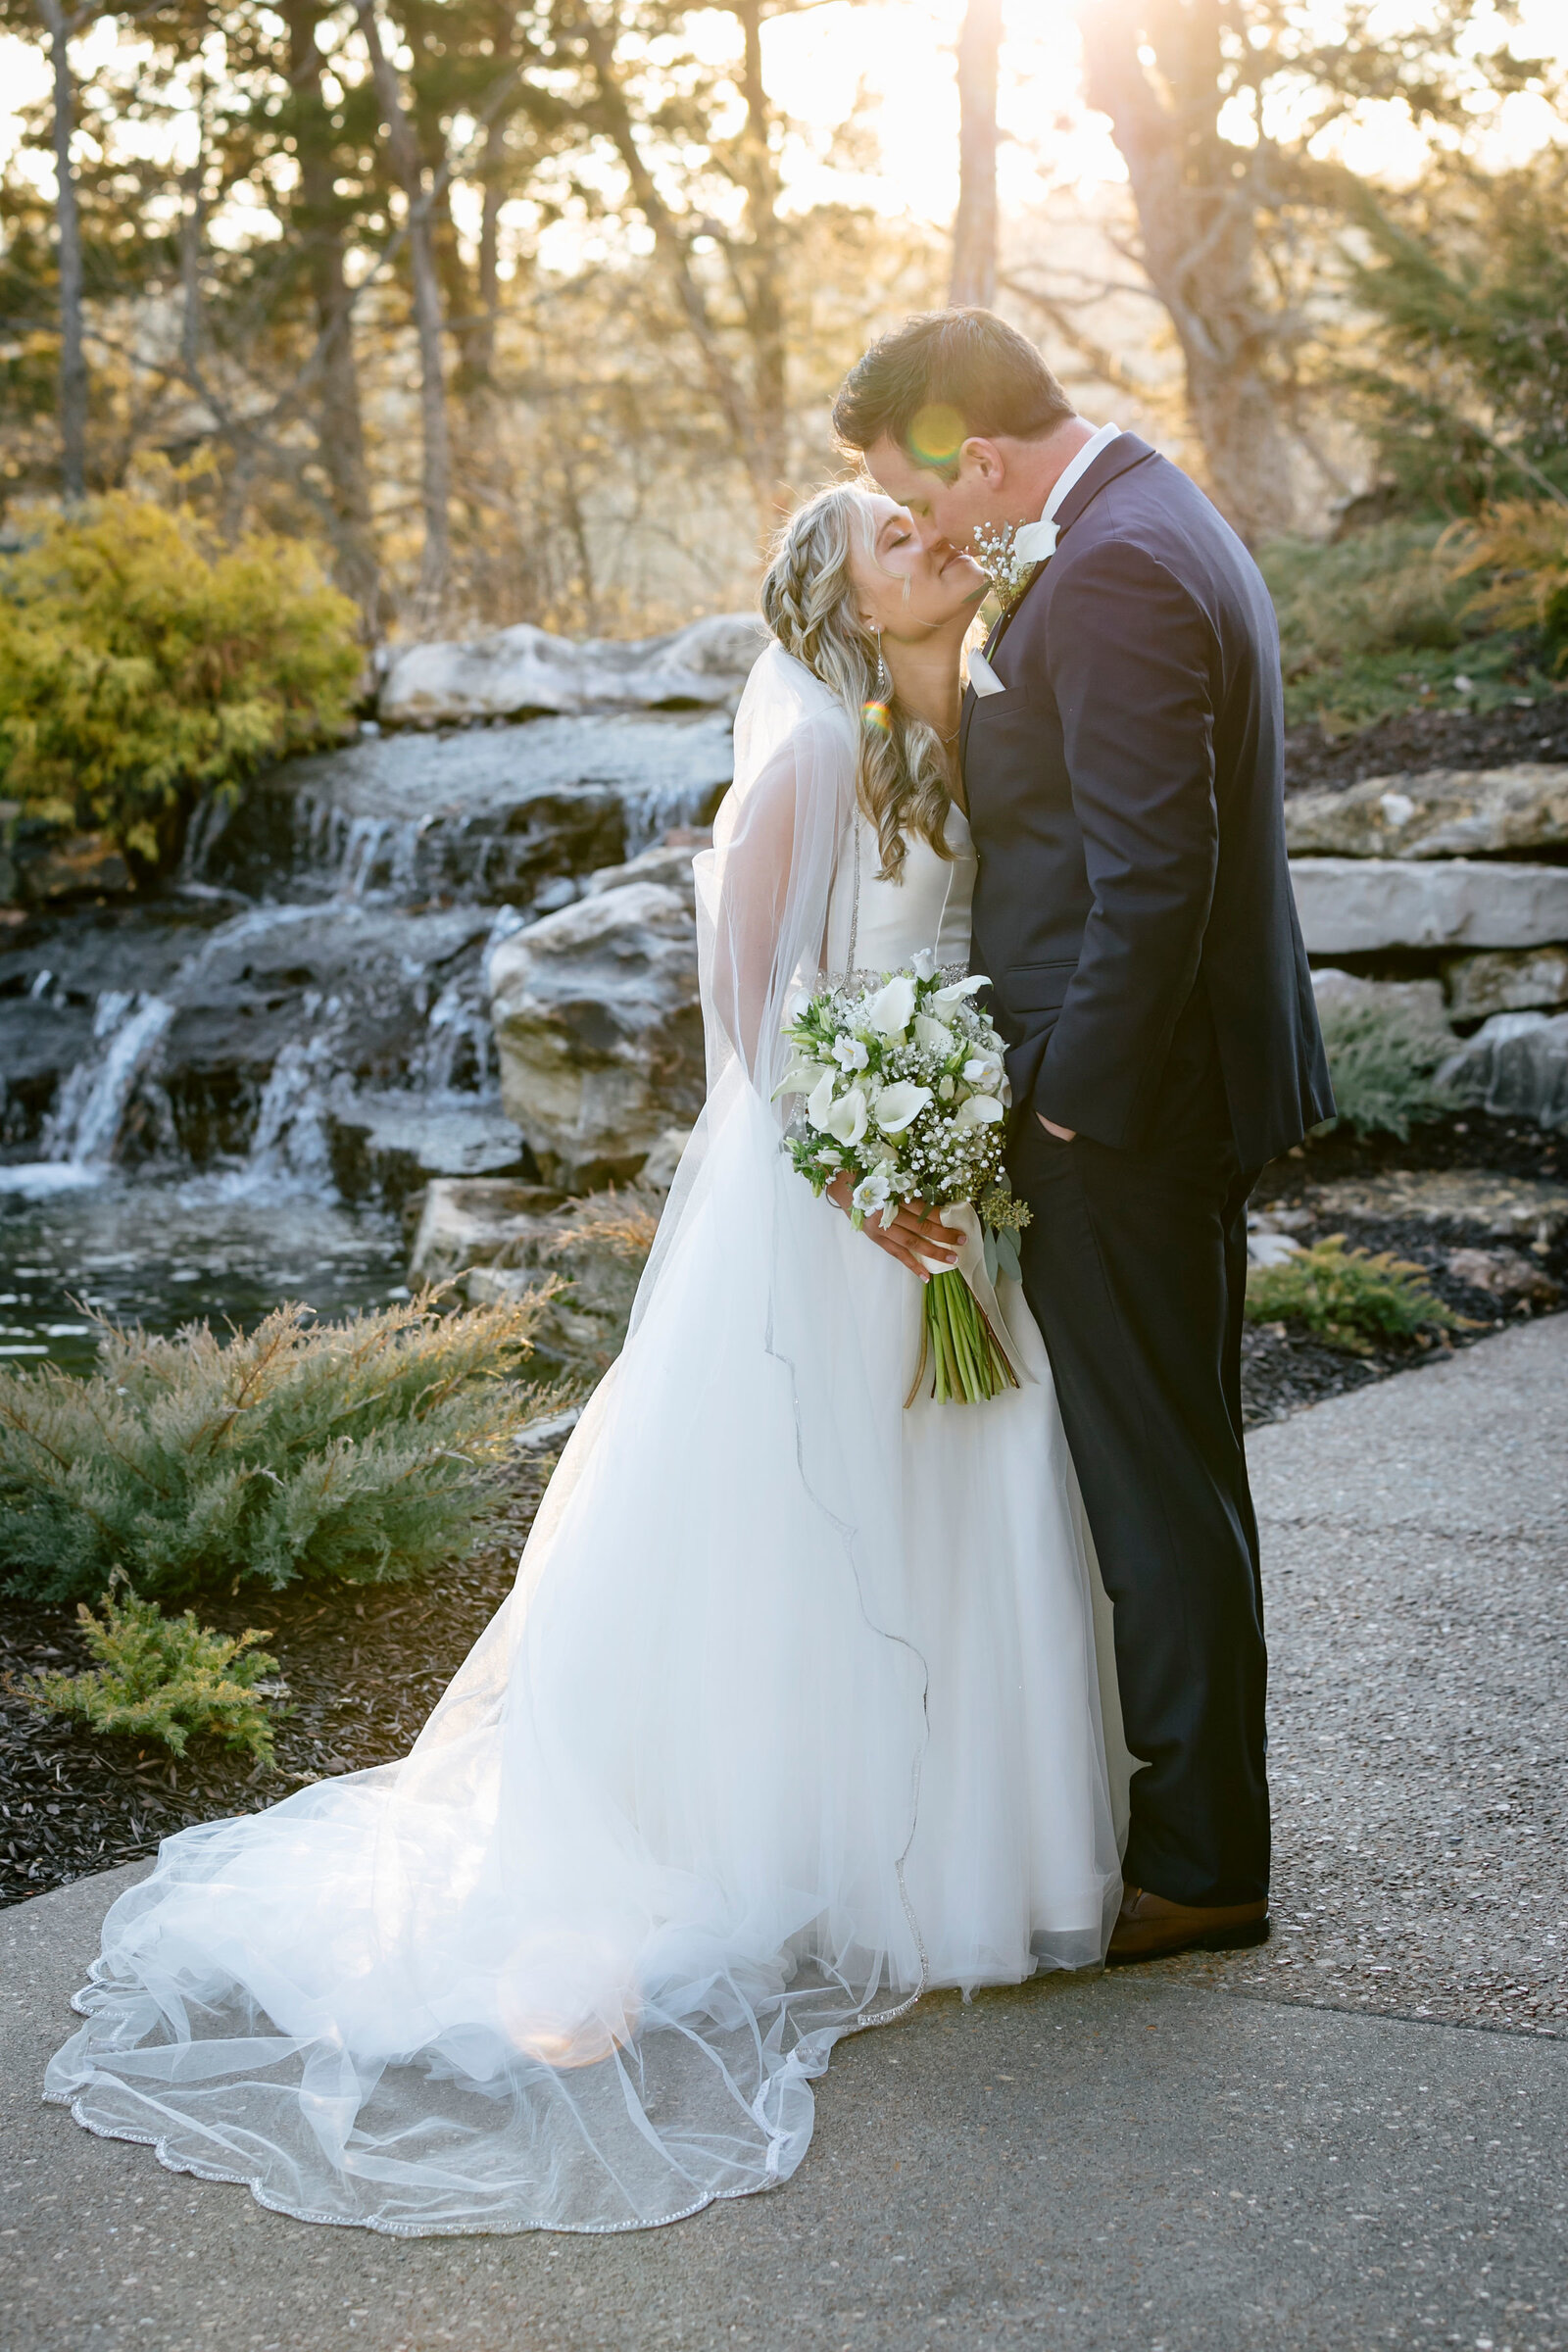 hicks_wedding_sneak_peek_rkc_photography-61